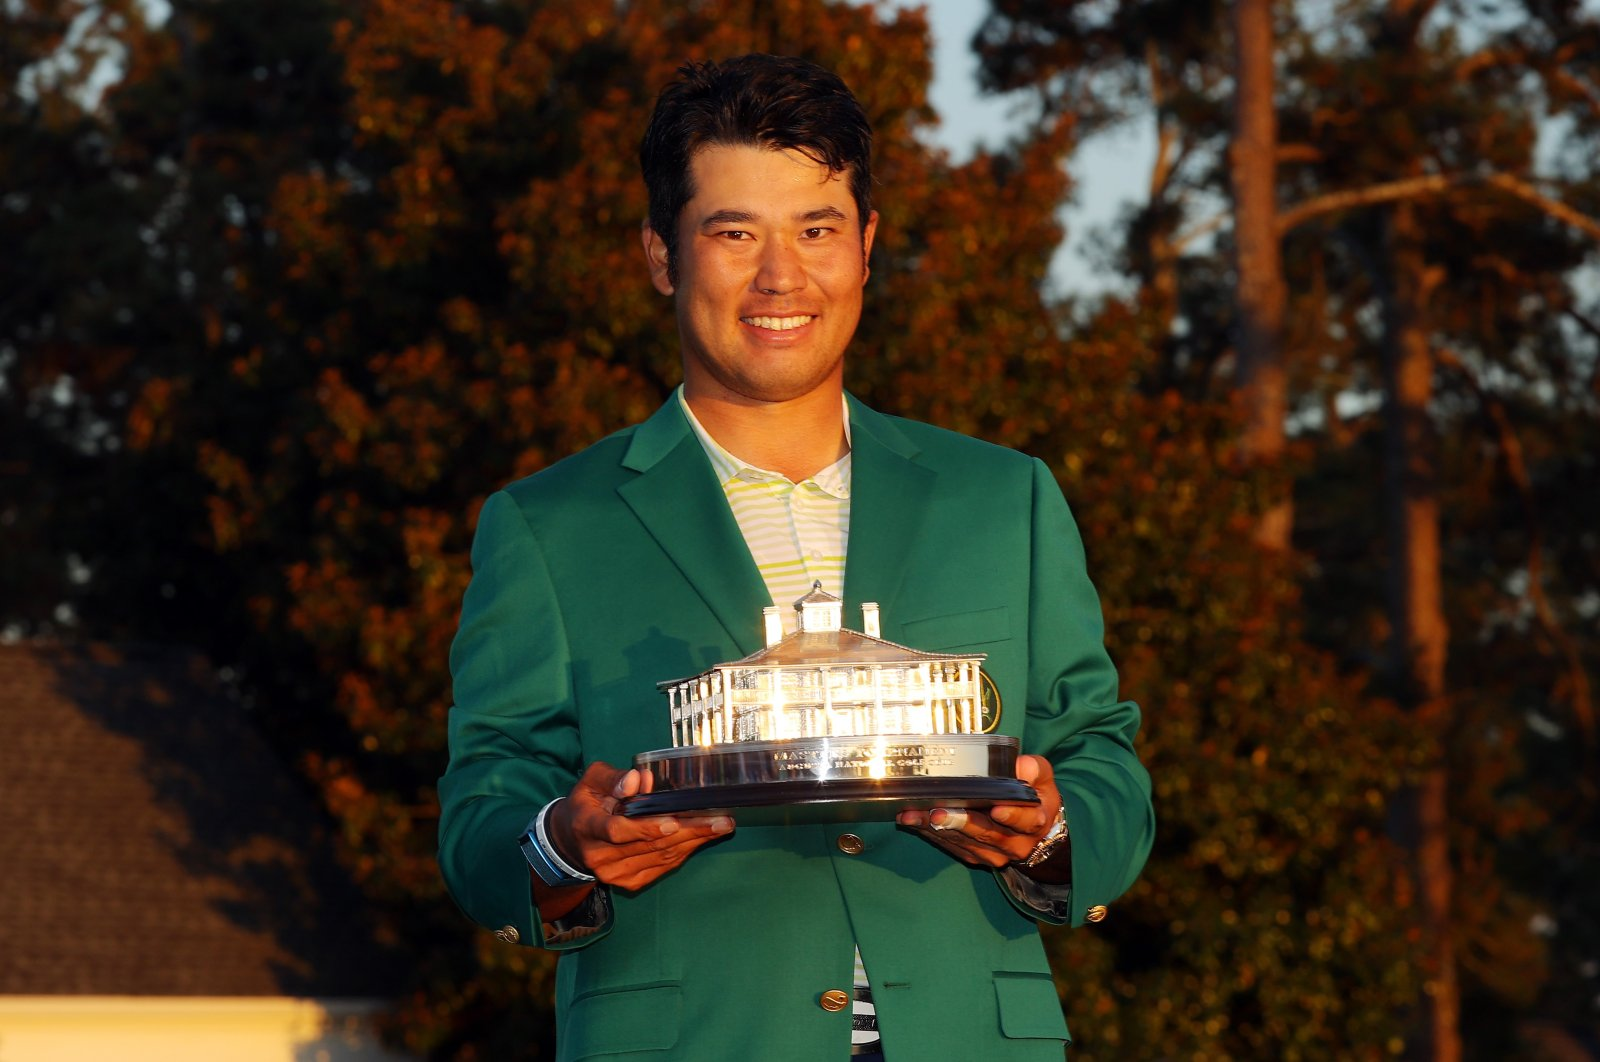 Japan's Hideki Matsuyama poses with the Masters Trophy at Augusta National Golf Club, Augusta, Georgia, April 11, 2021. (AFP Photo)